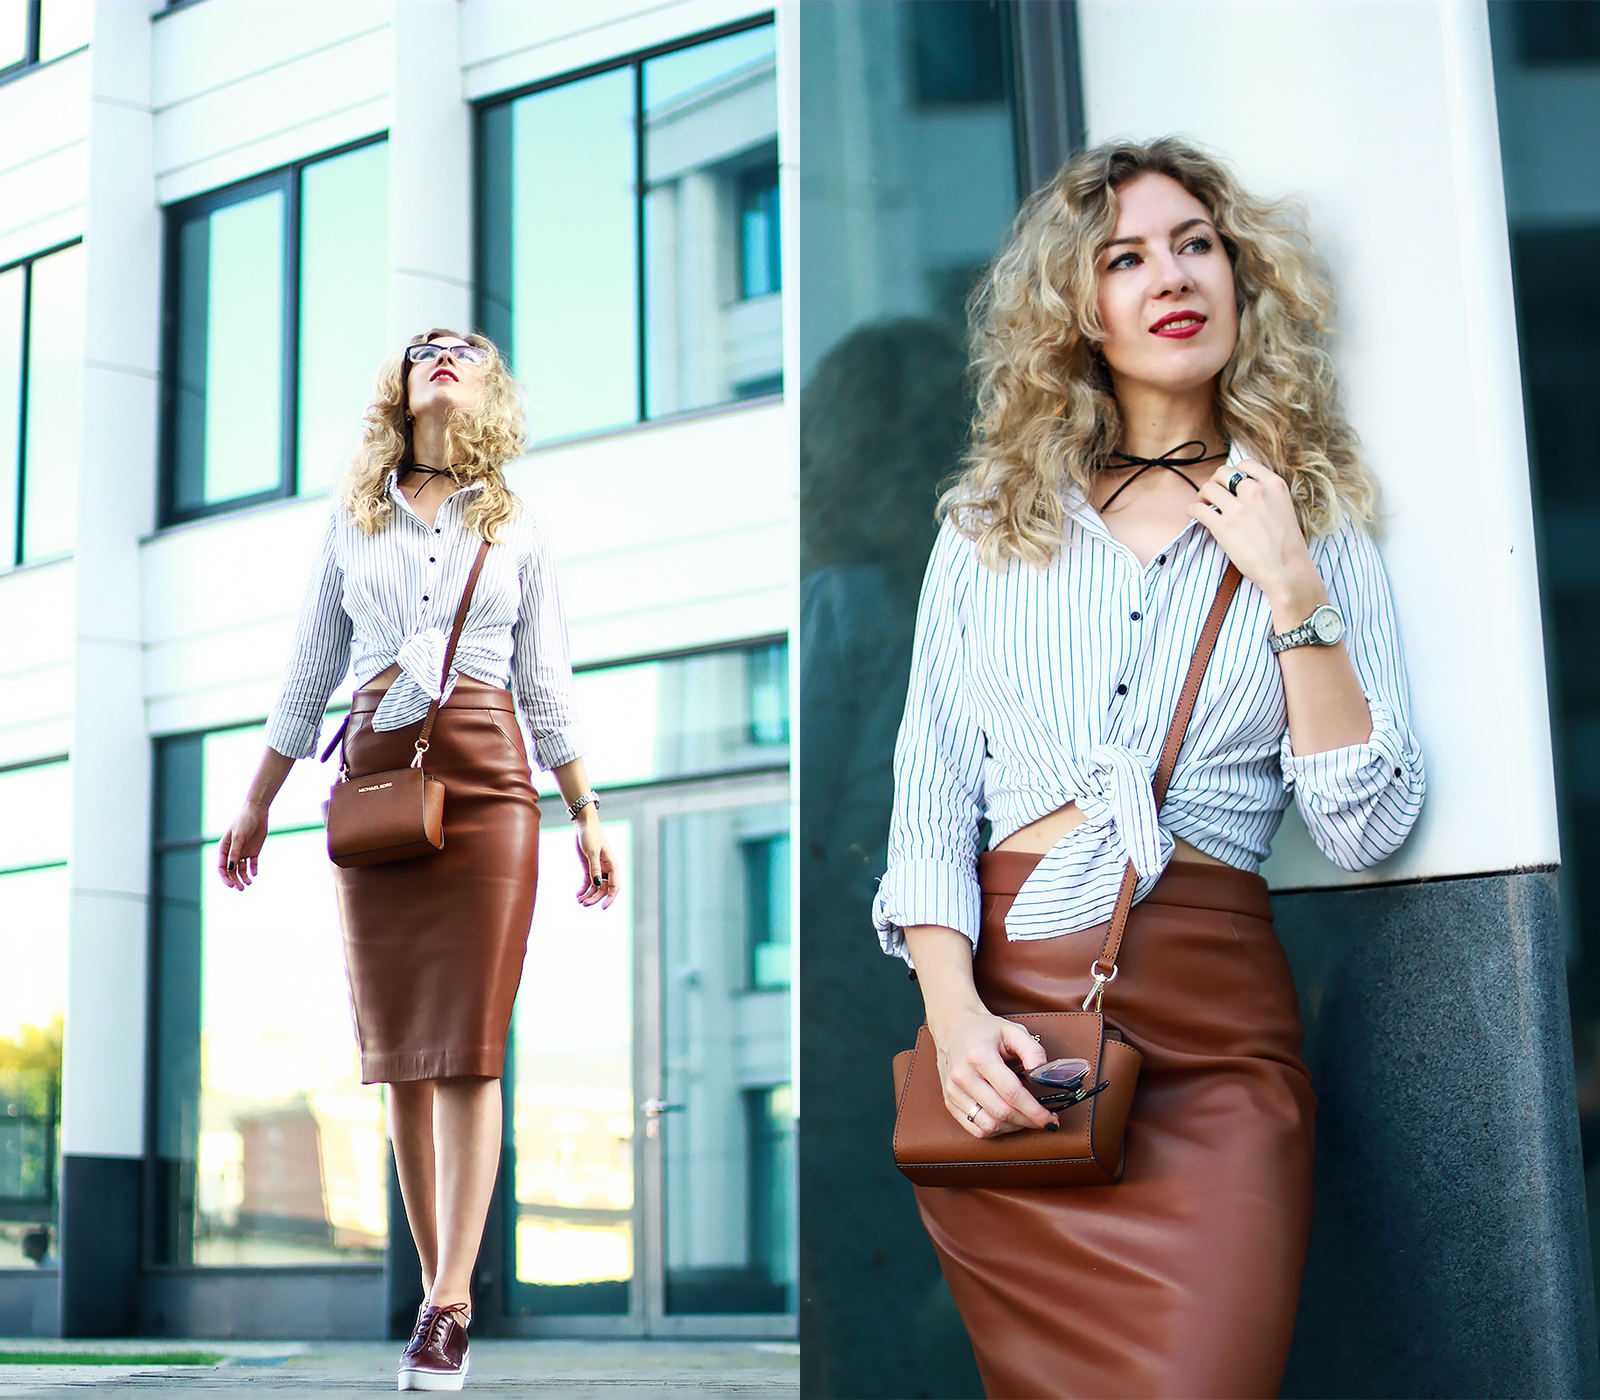 Leather skirt in big city